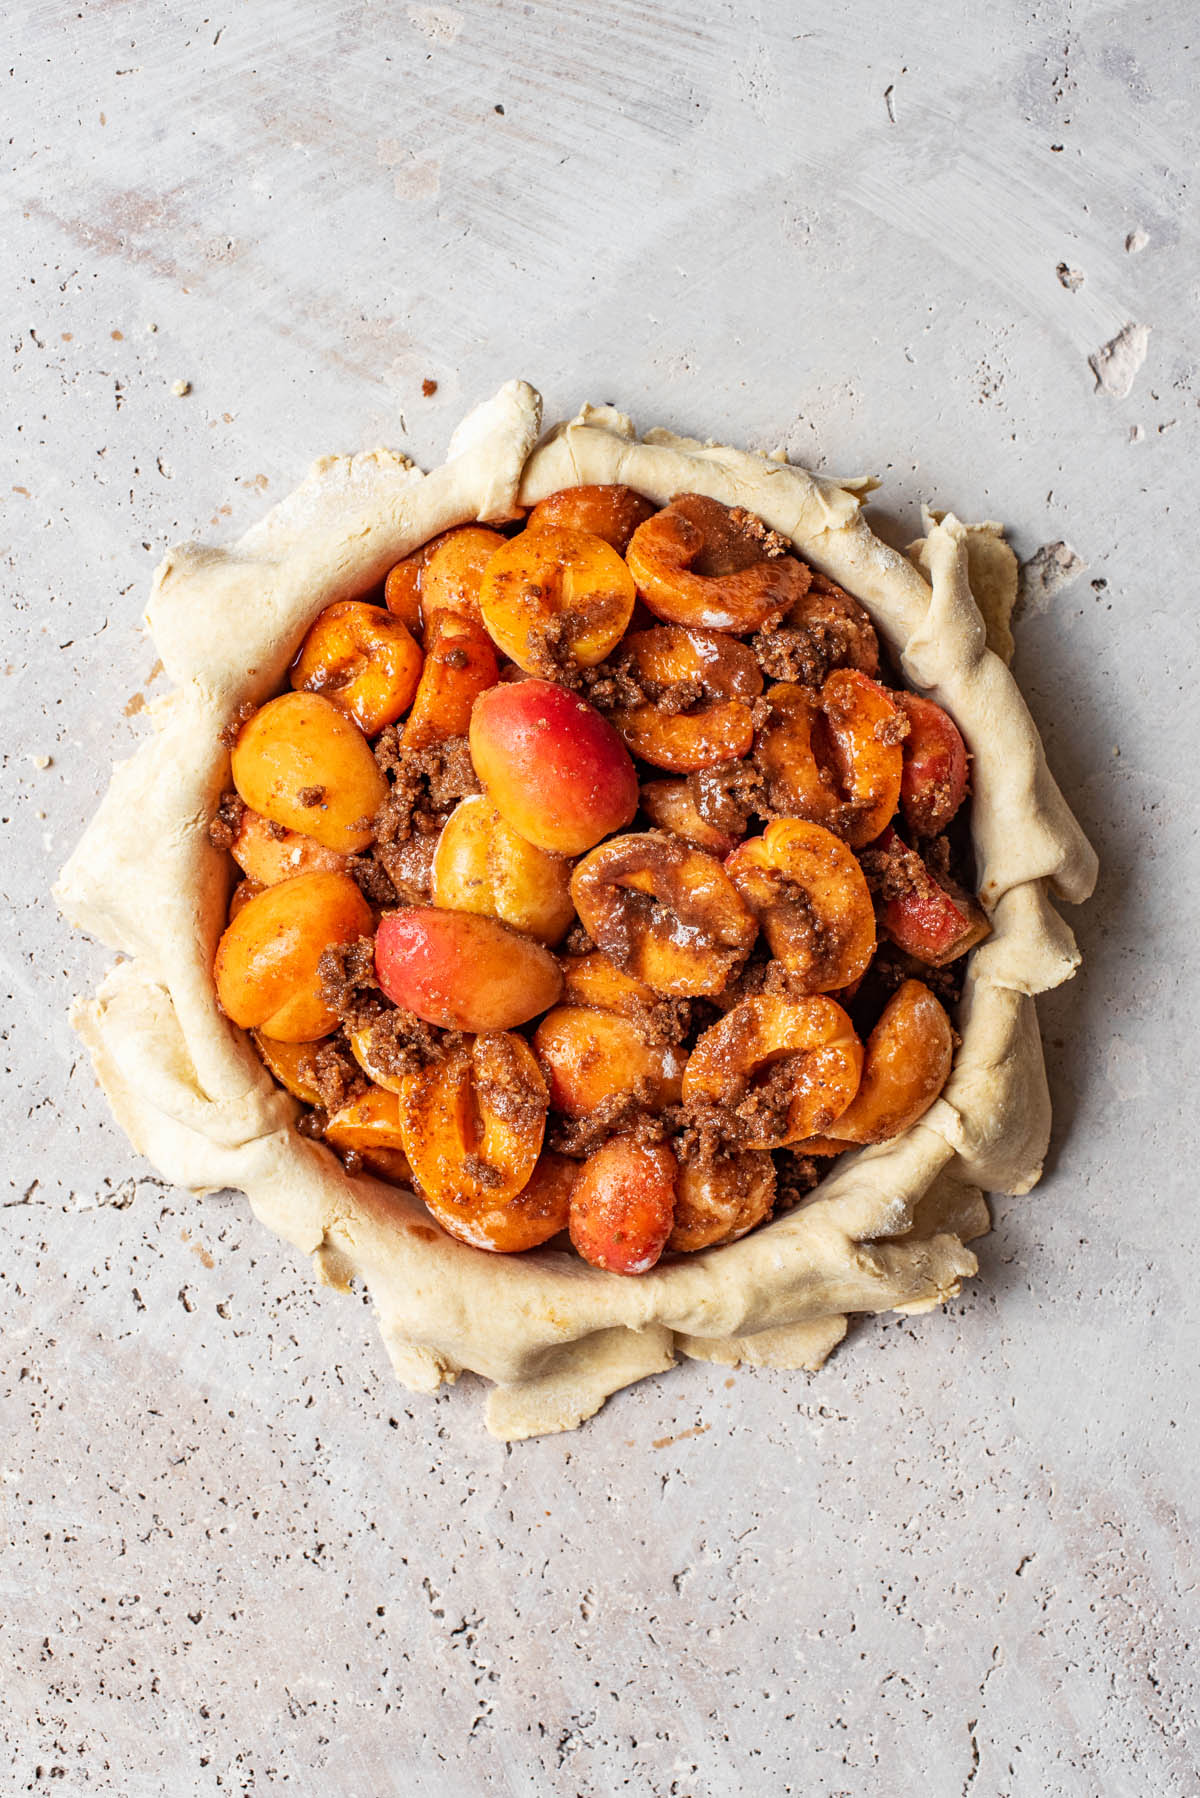 Apricot filling added to the pie crust.